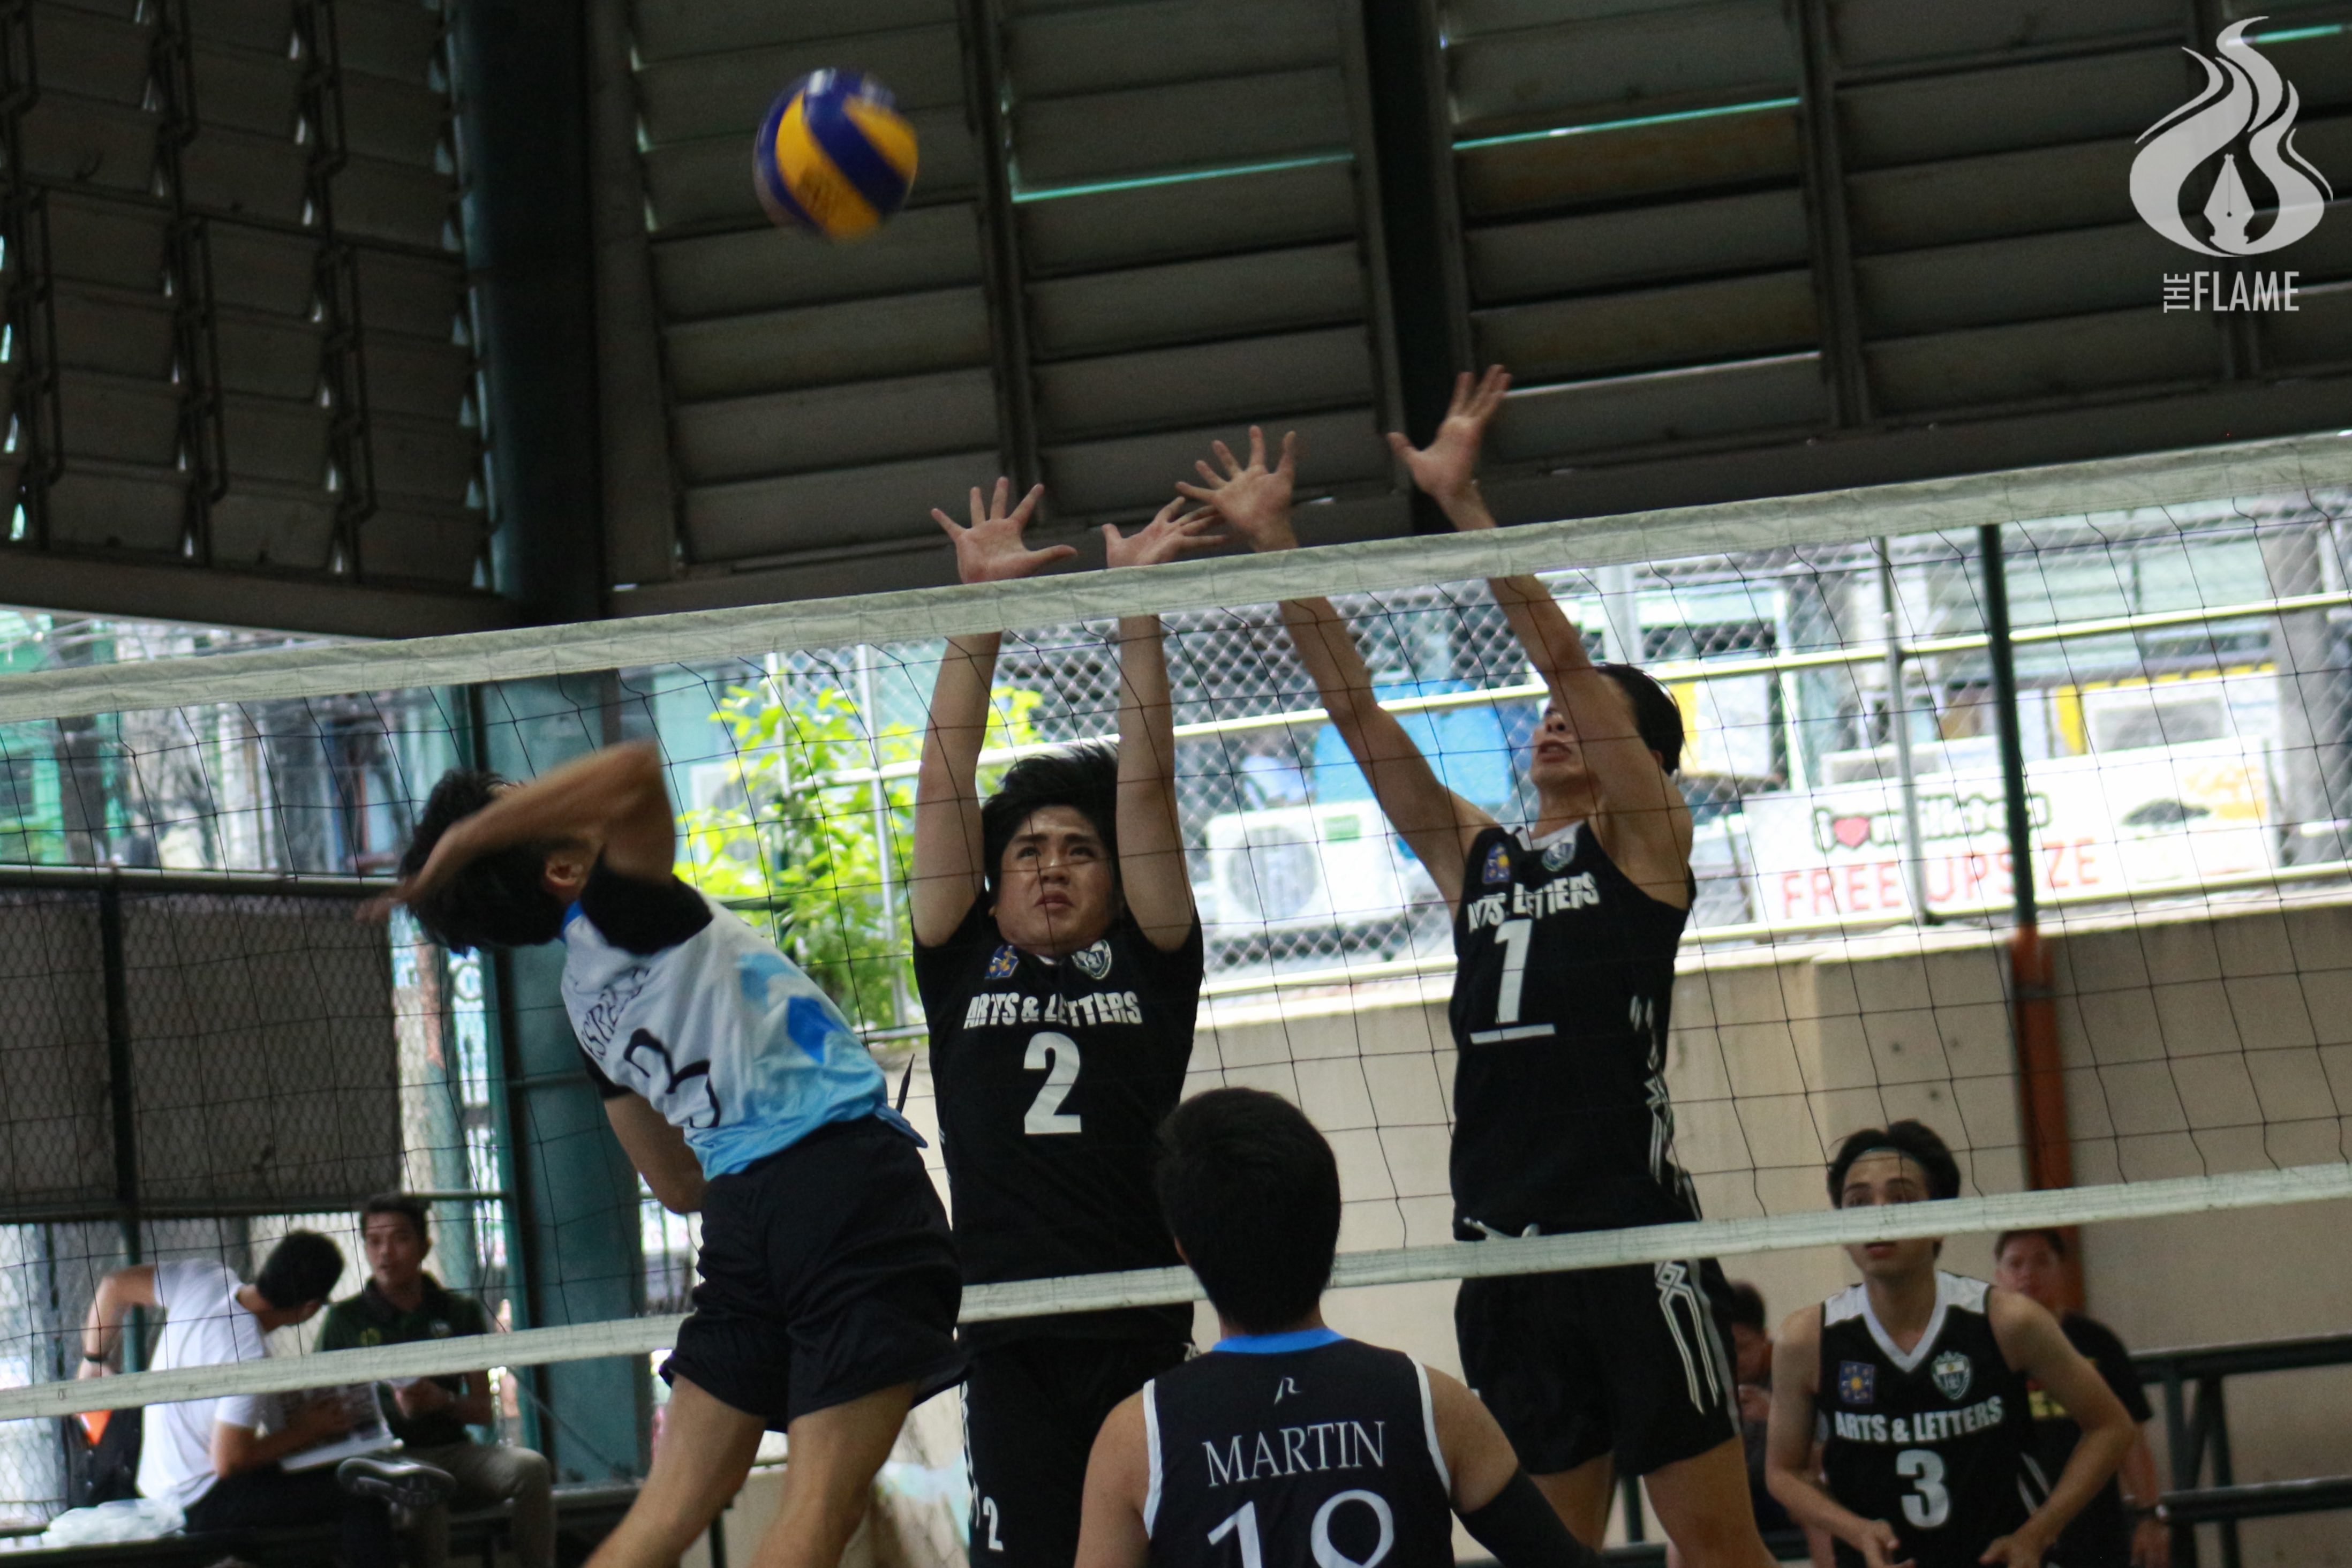 AB Men's upsets Science, takes second win